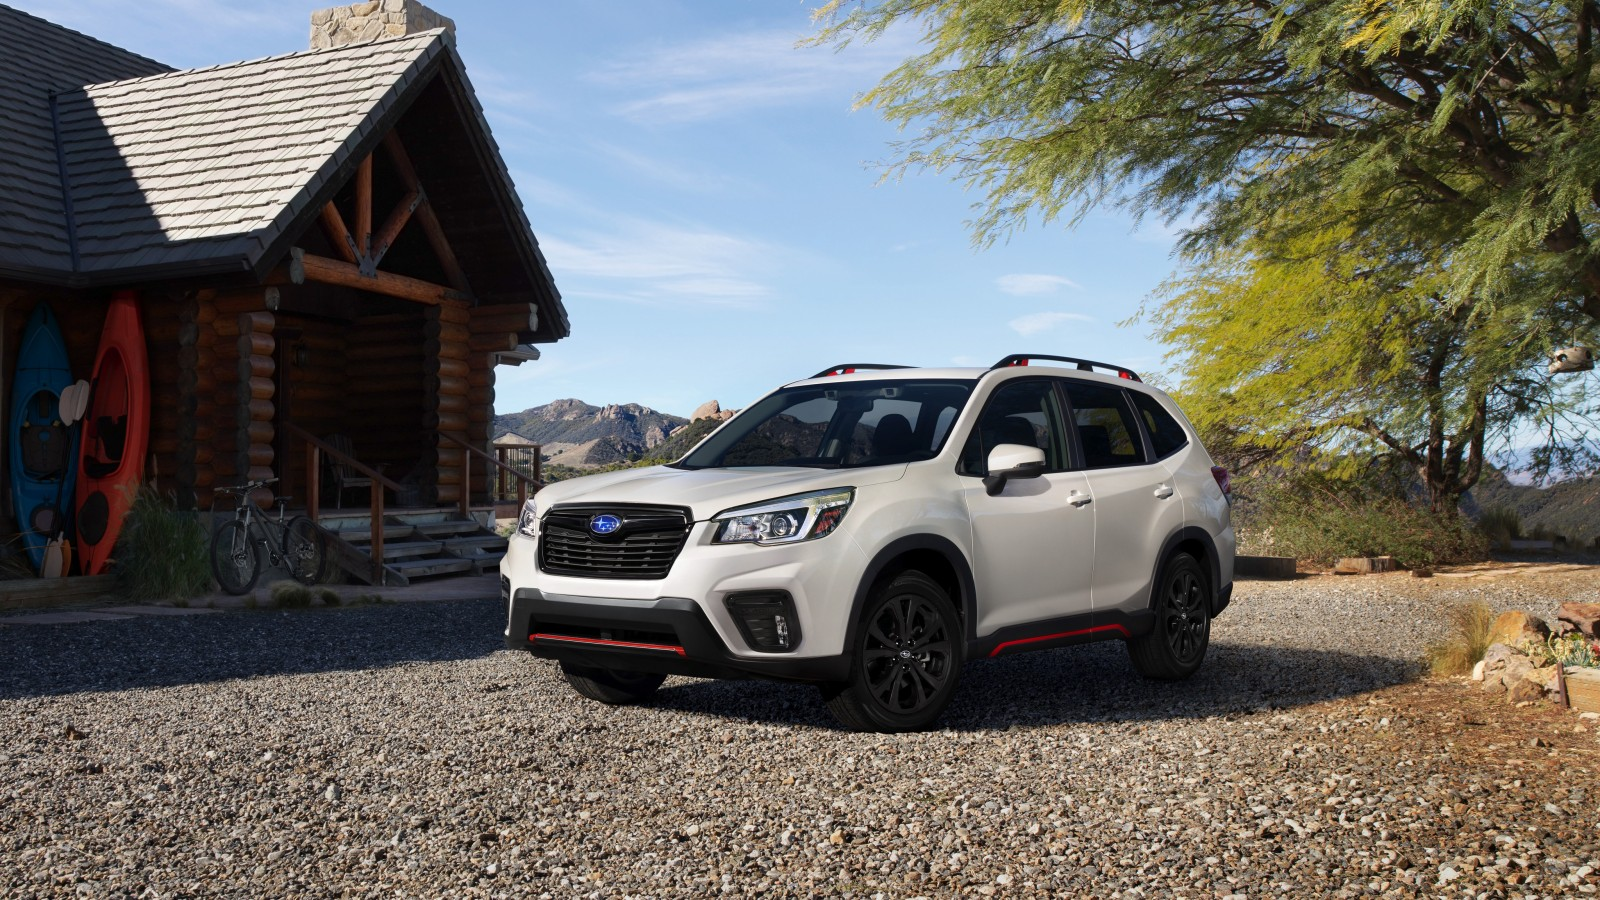 2019 Subaru Forester Sport 4k Wallpaper Hd Car Wallpapers